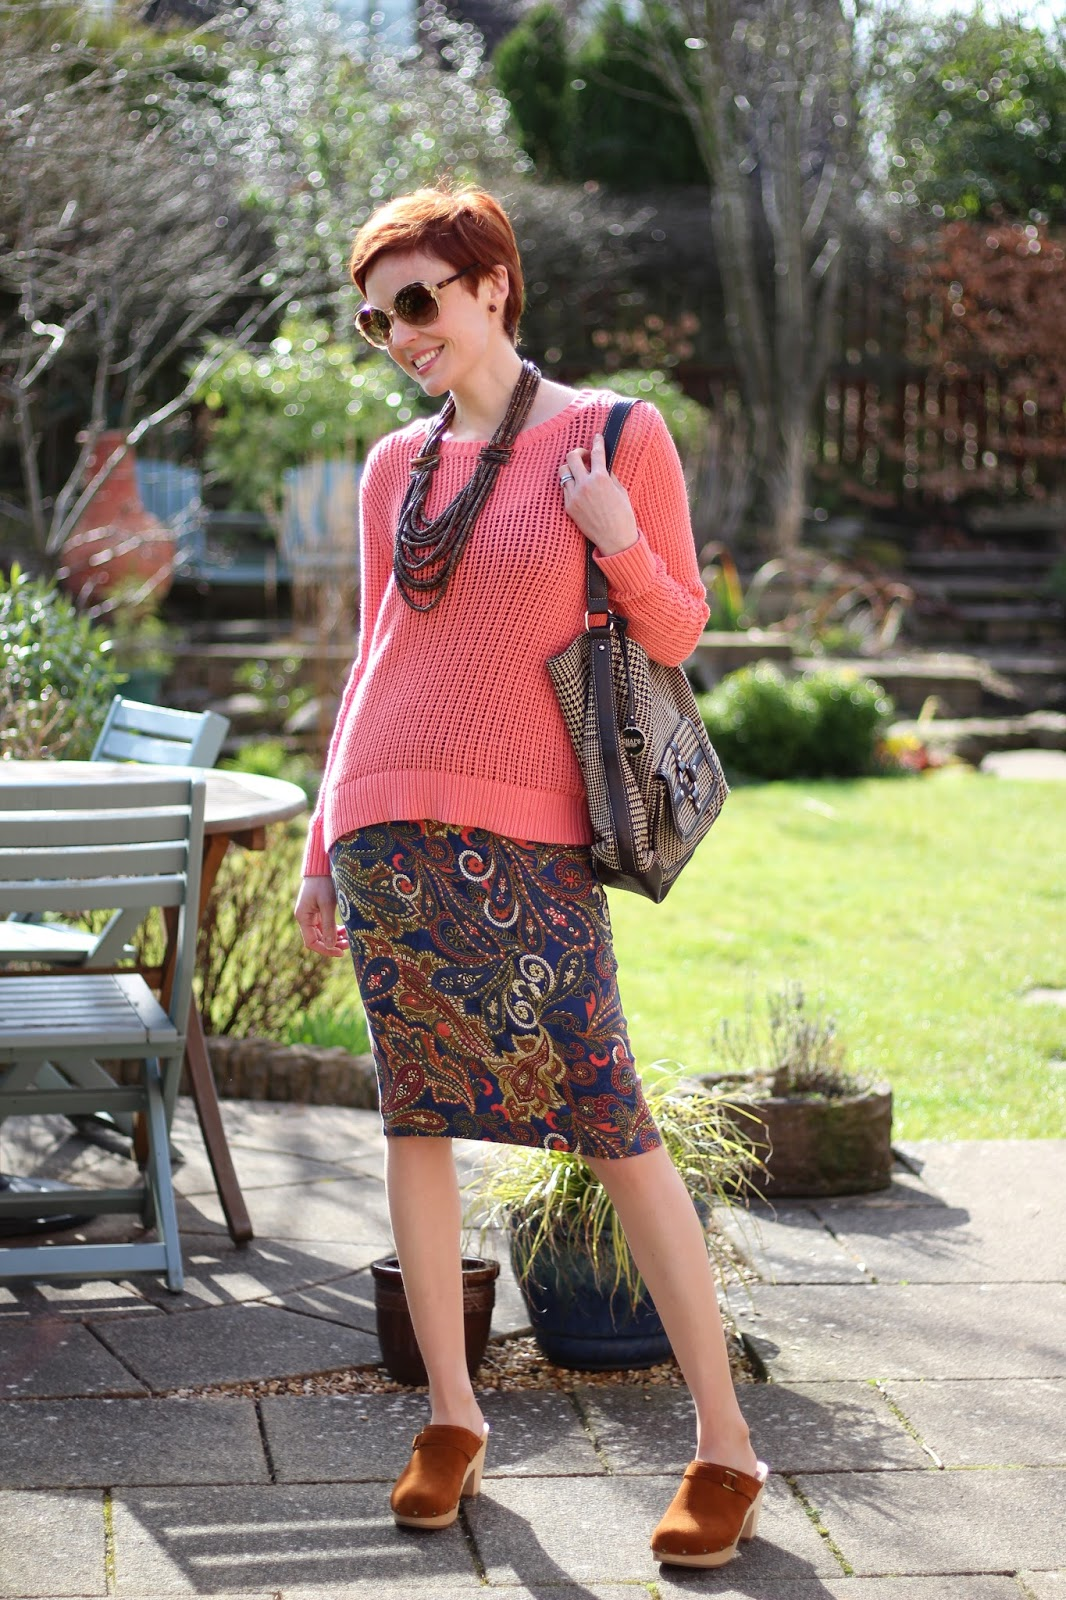 Fake Fabulous | Paisley pencil skirt, coral jumper, tweed bag and tan clogs.